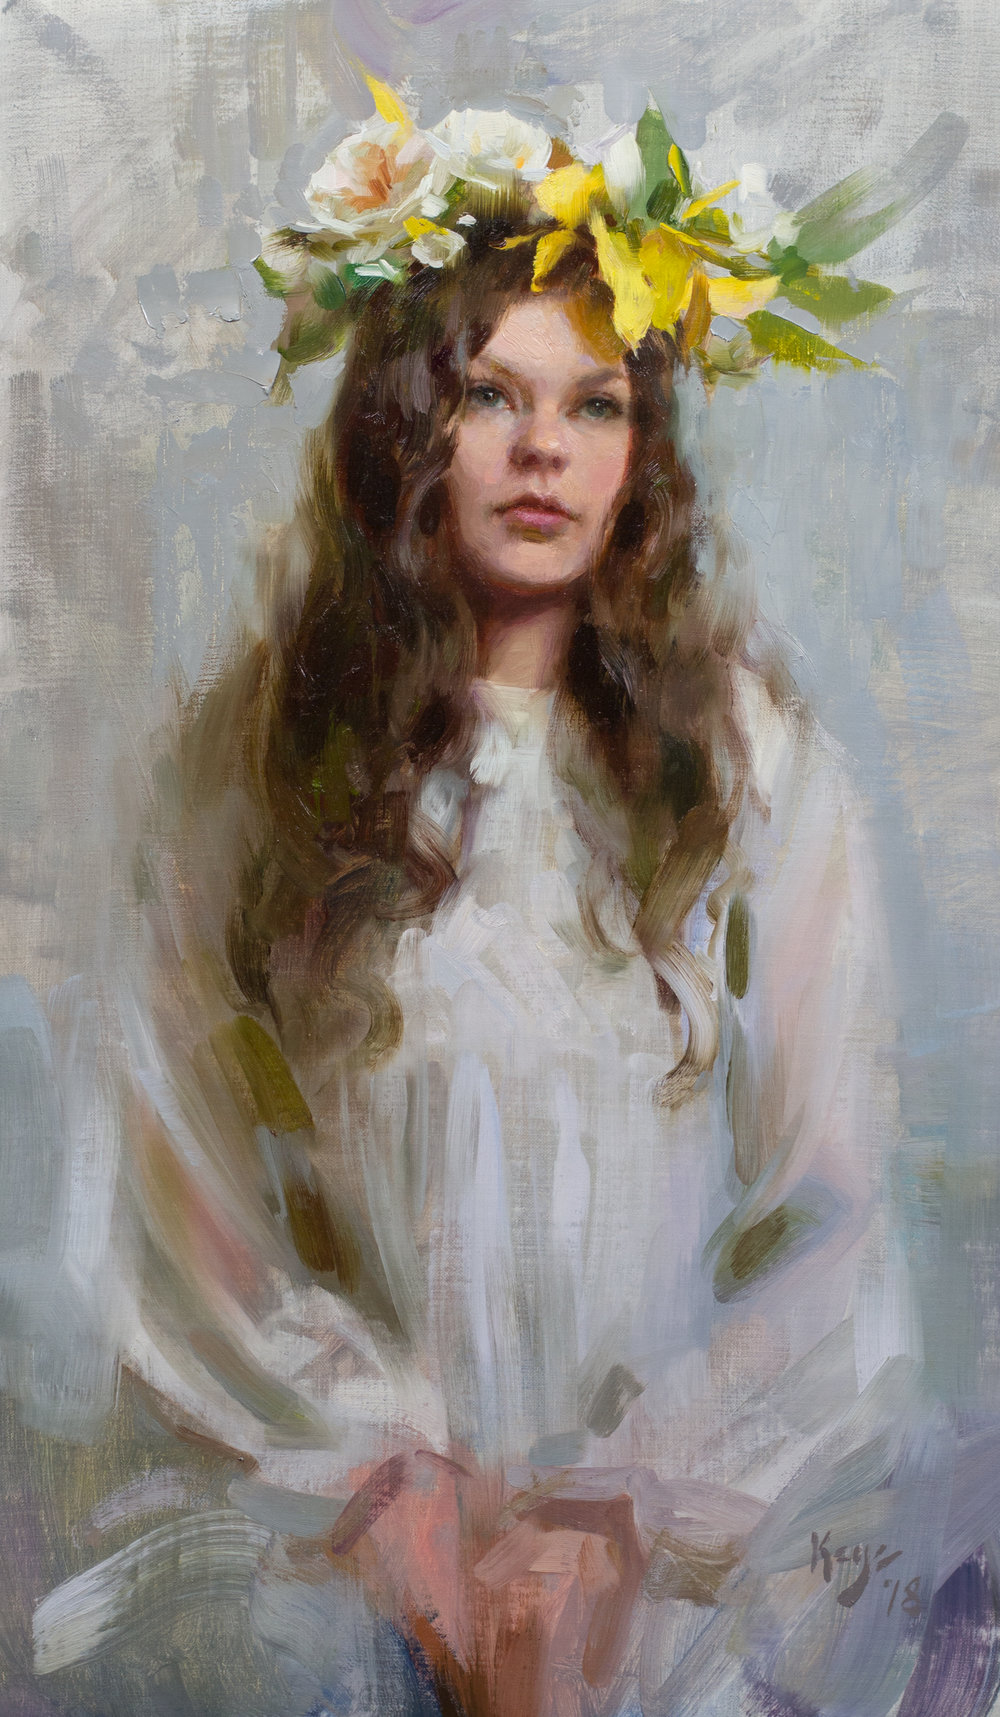 Daydream, 24 x 14 inches, oil on linen